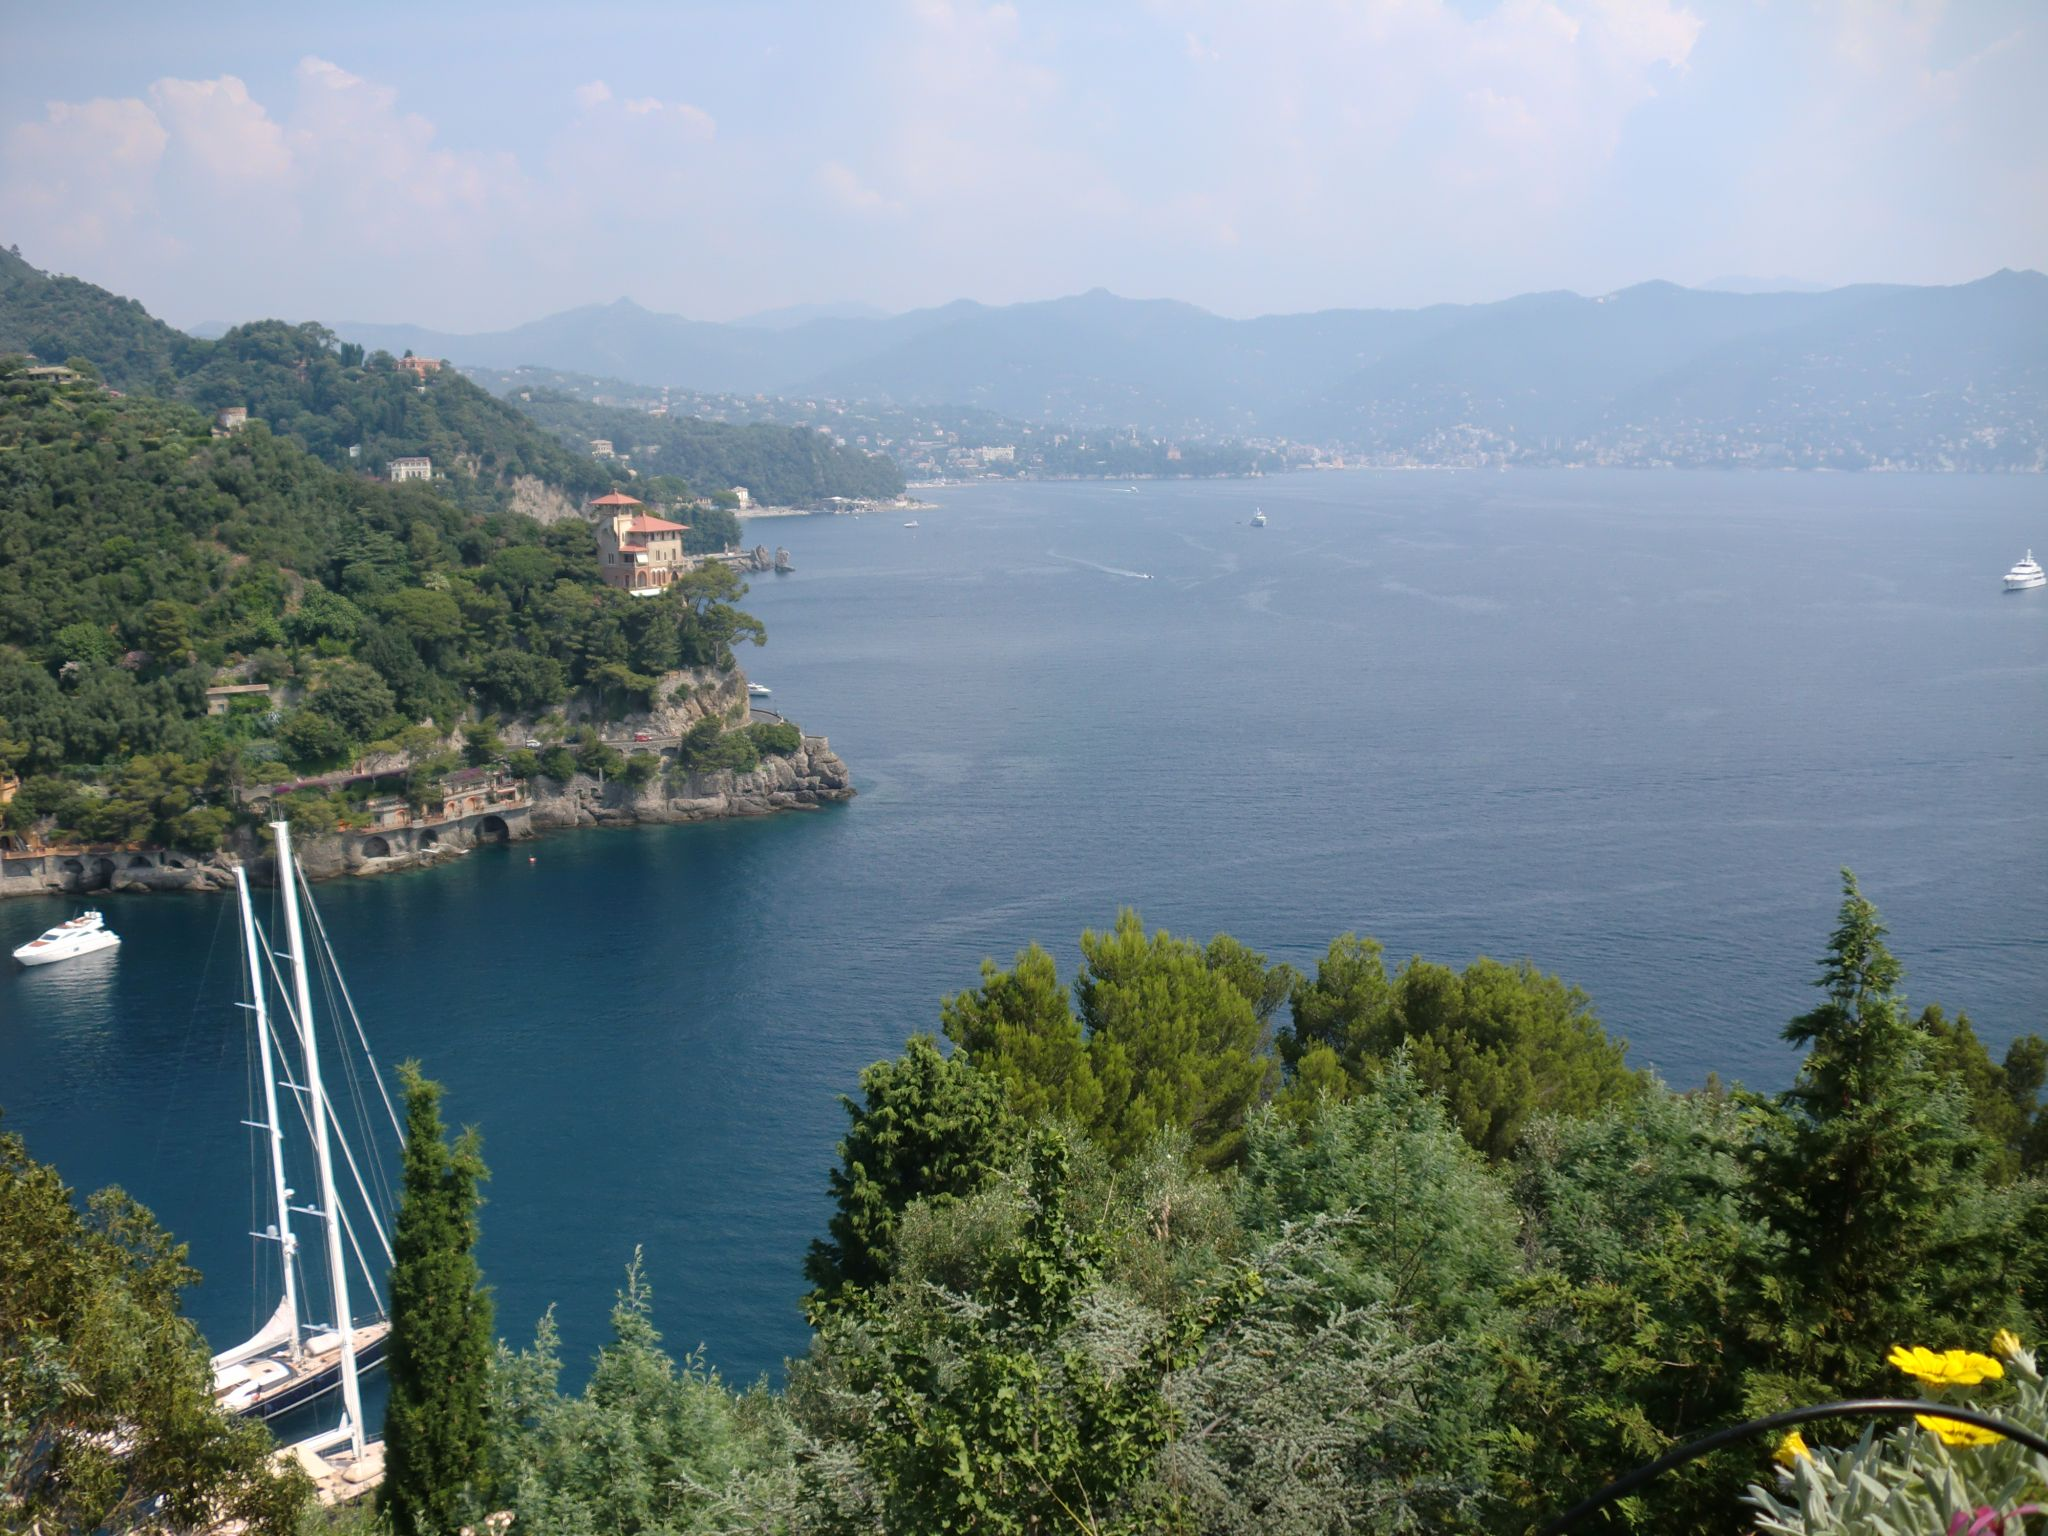 Portofino 47 - Portofino: a small pearl on the sea